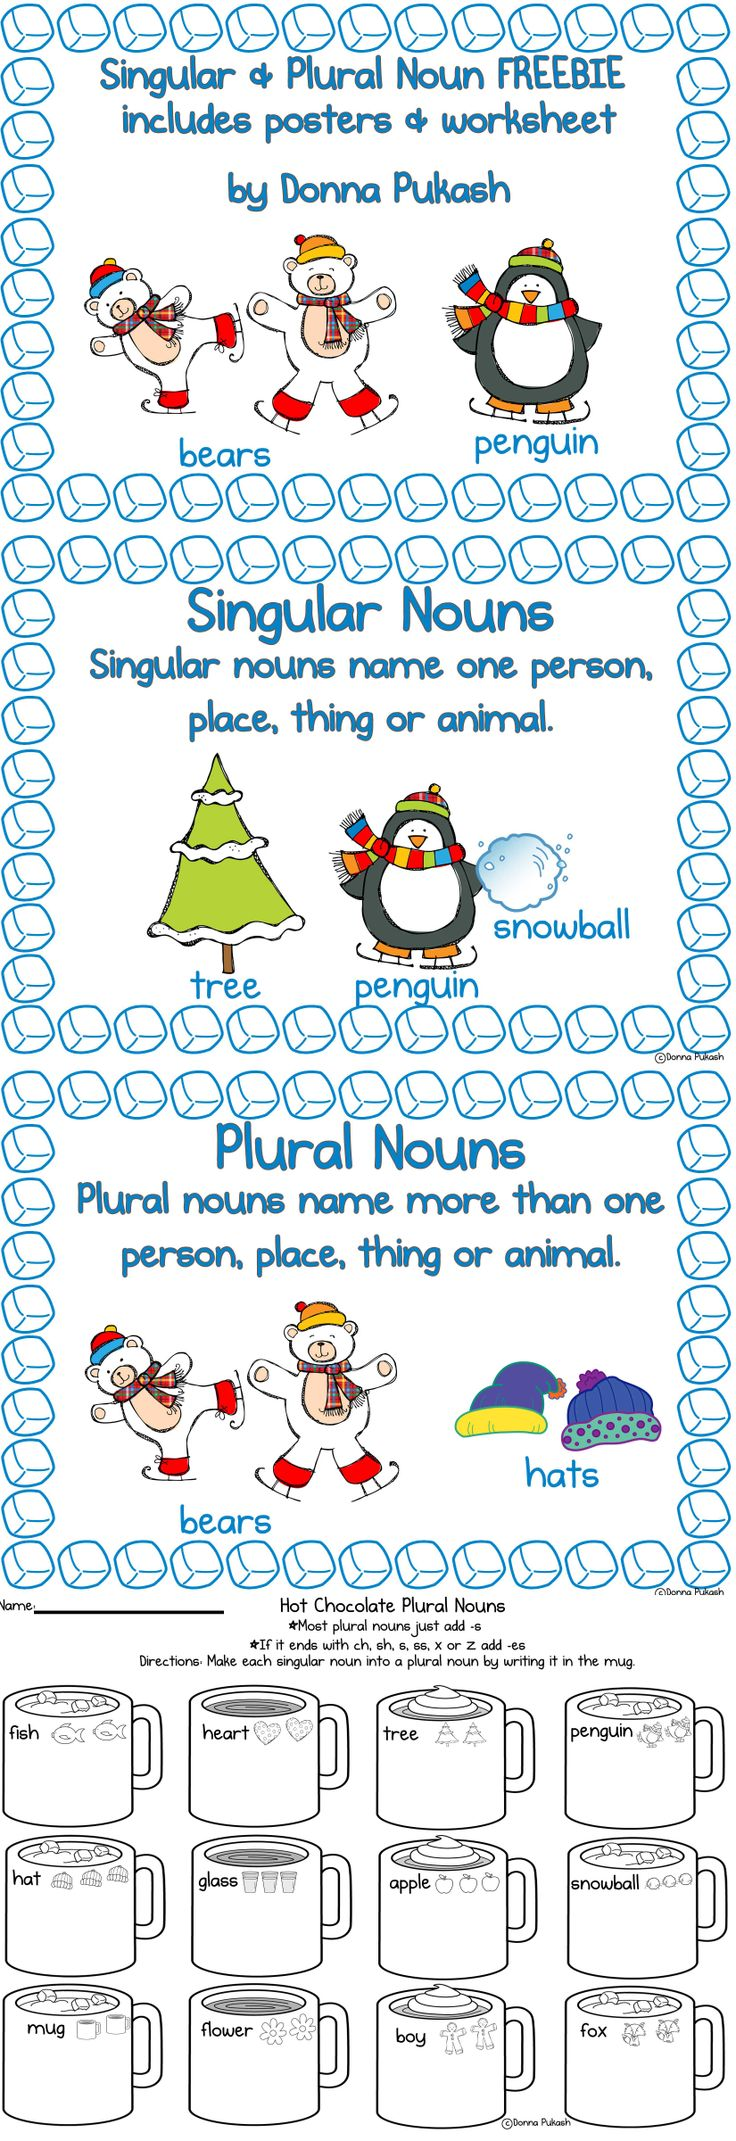 Workbooks making words plural worksheets : Best 25+ Singular and plural nouns ideas on Pinterest | Plural ...